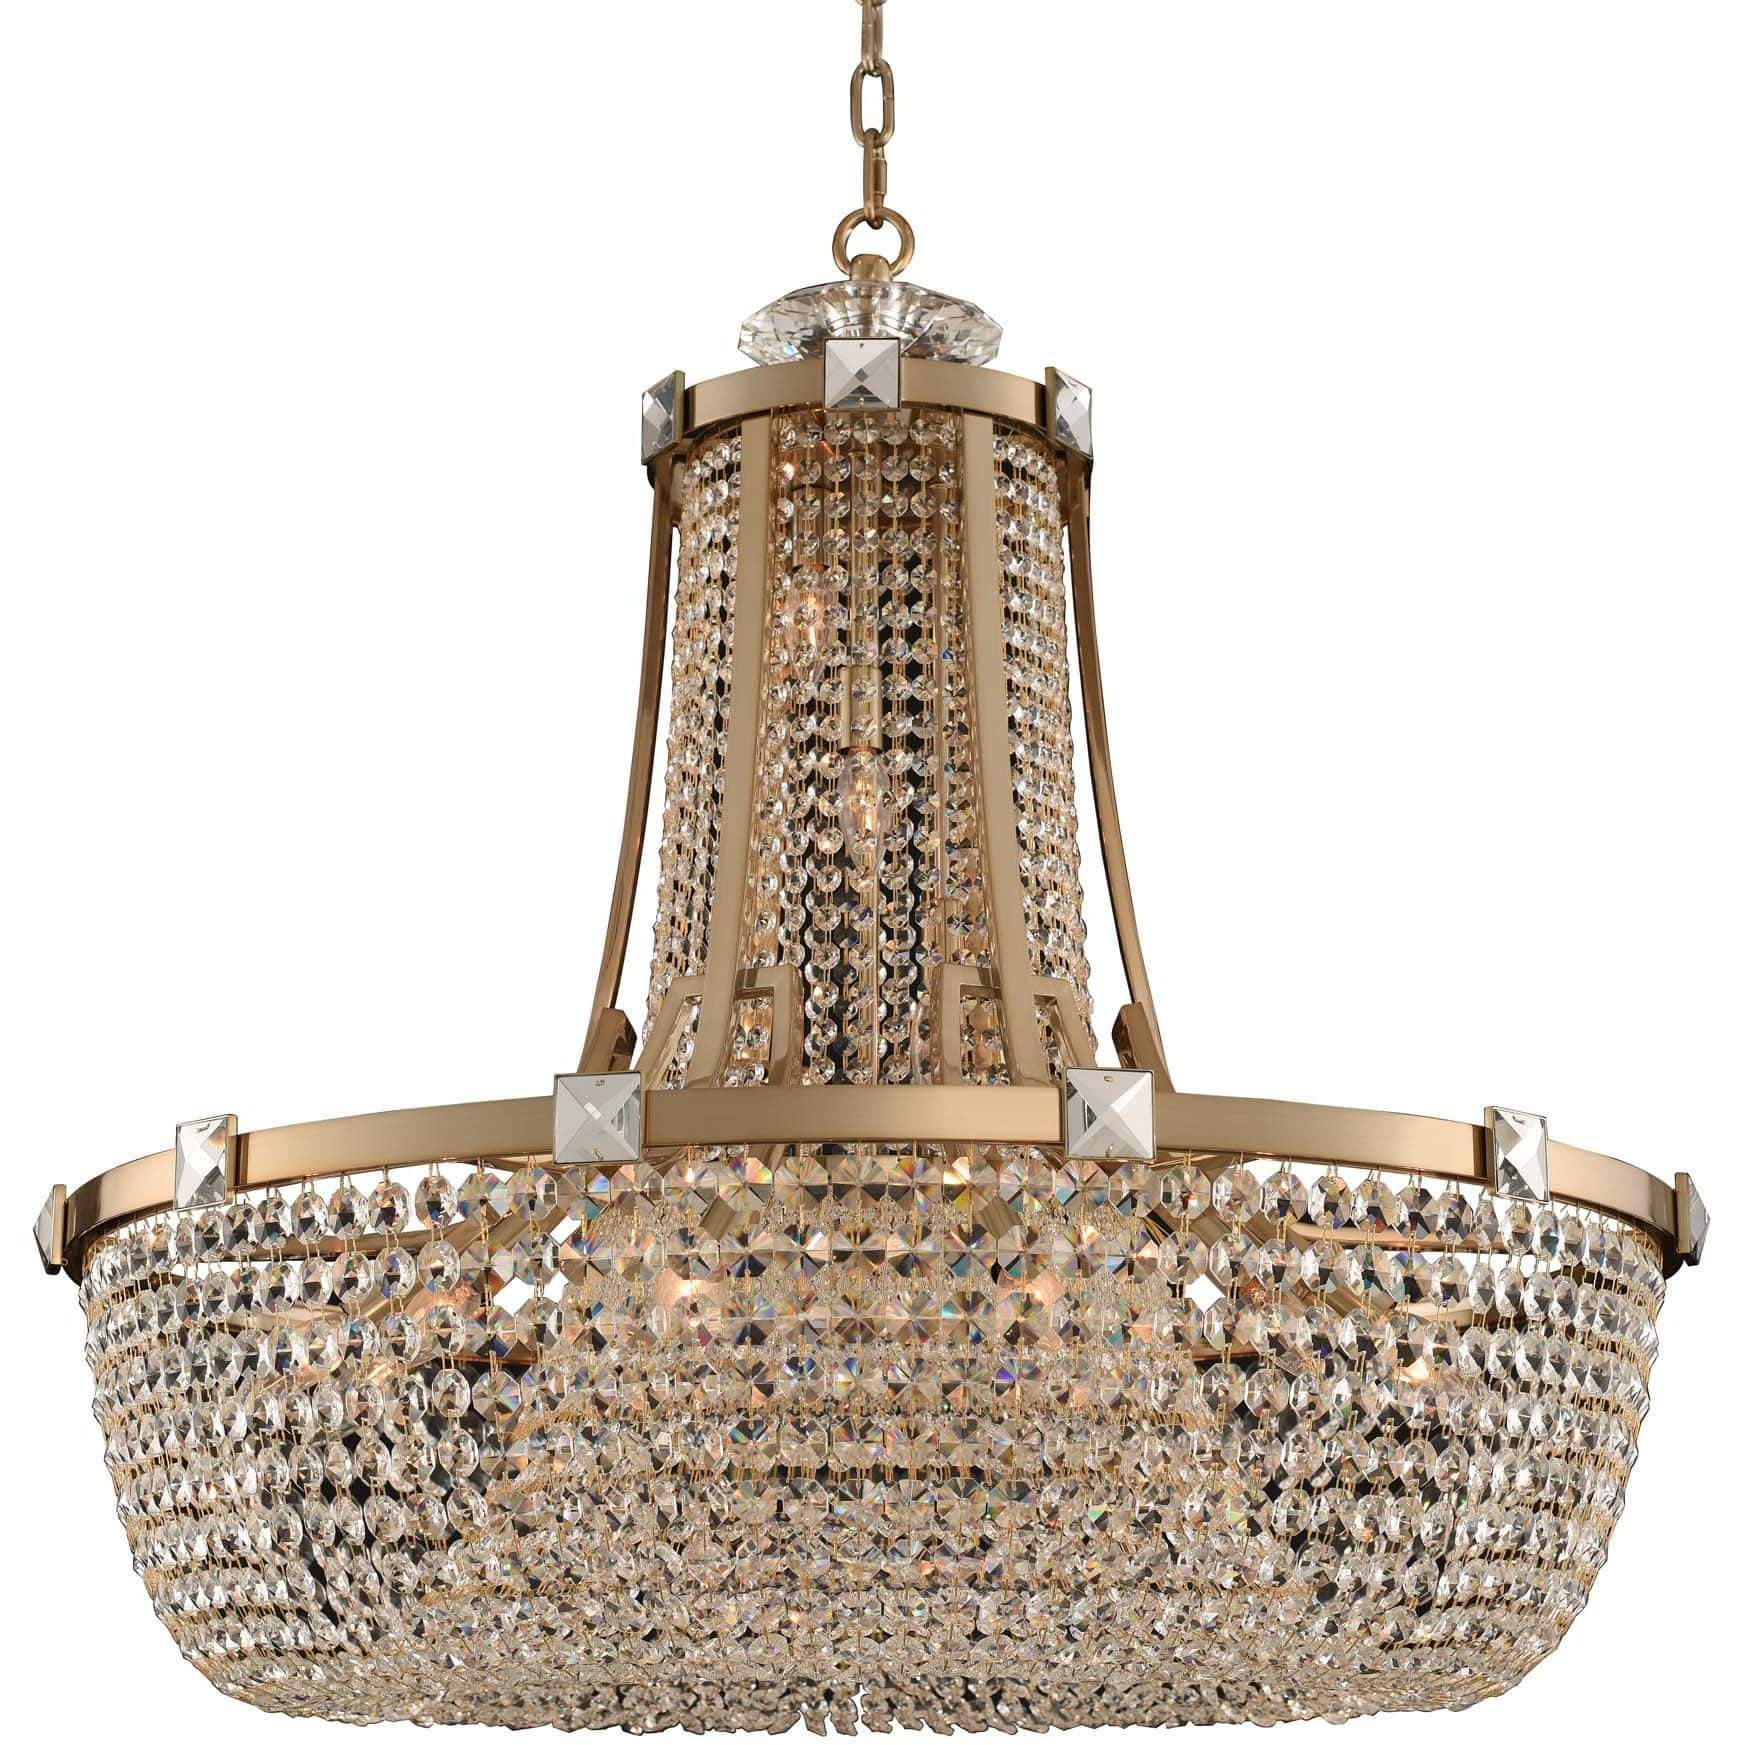 Allegri by Kalco Lighting Pendants Brushed Champagne Gold / Firenze Clear Impero 36 Inch Pendant From Allegri by Kalco Lighting 027951